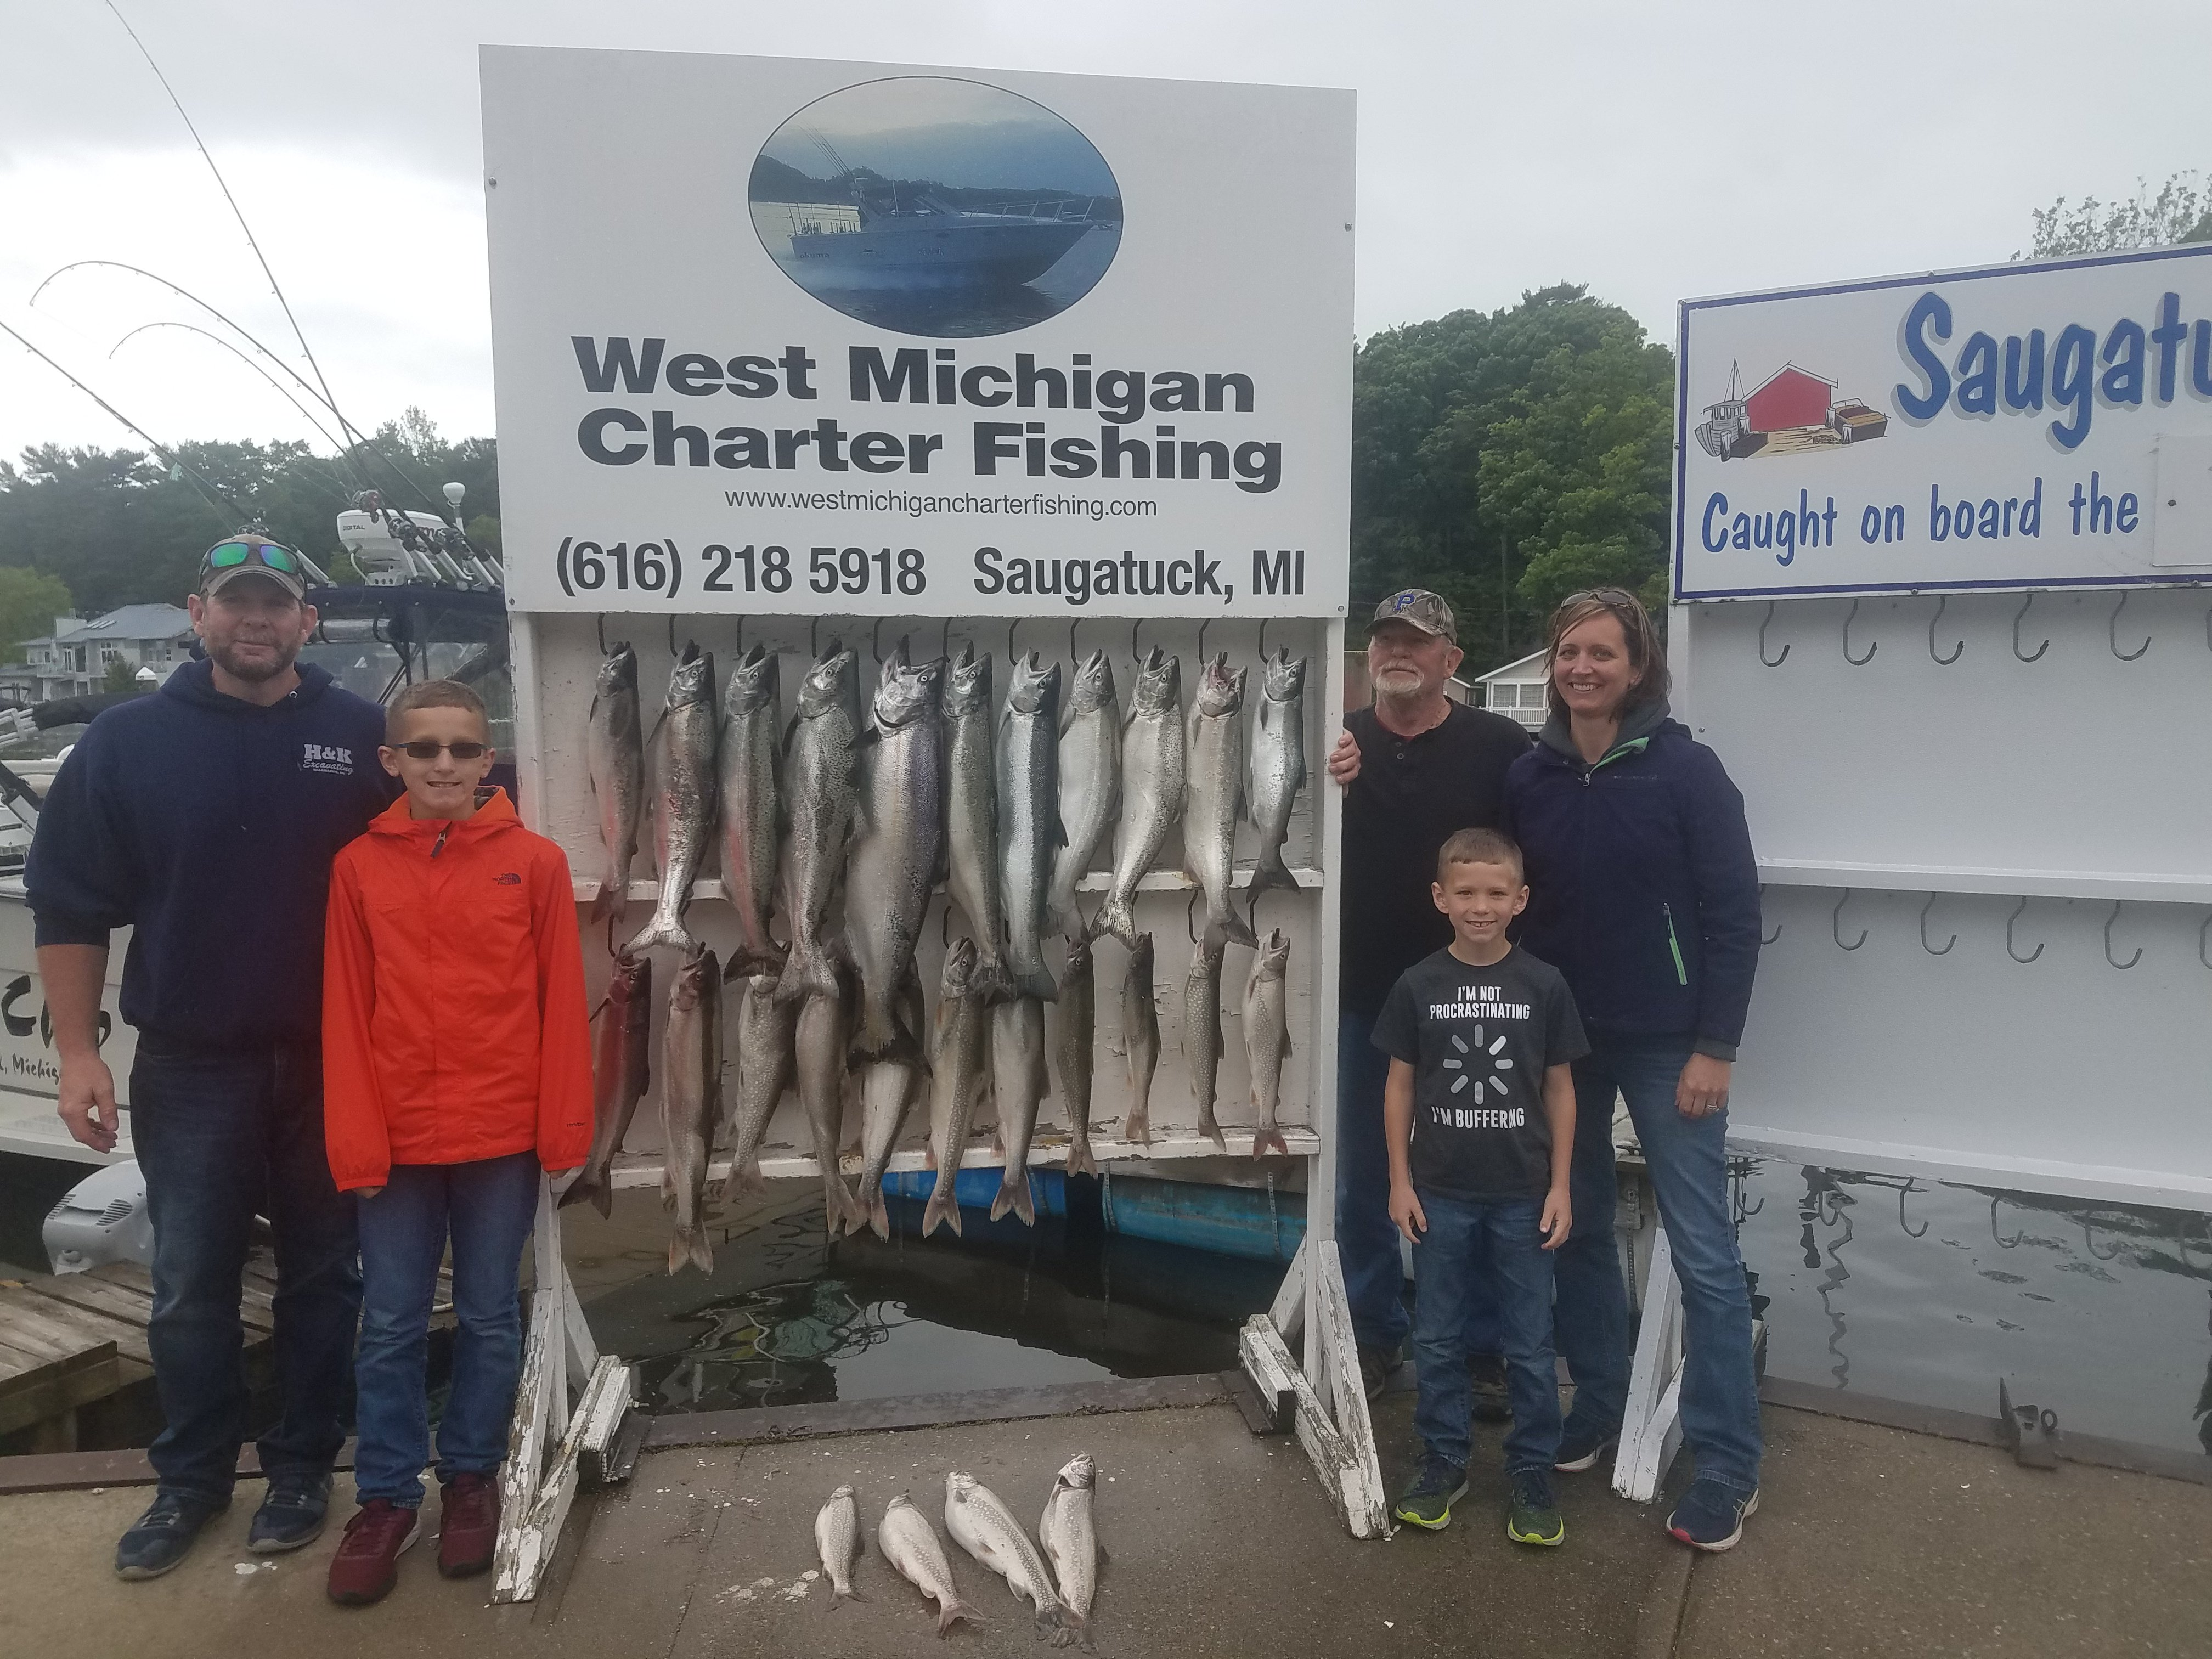 Fishing report – West Michigan Charter Fishing